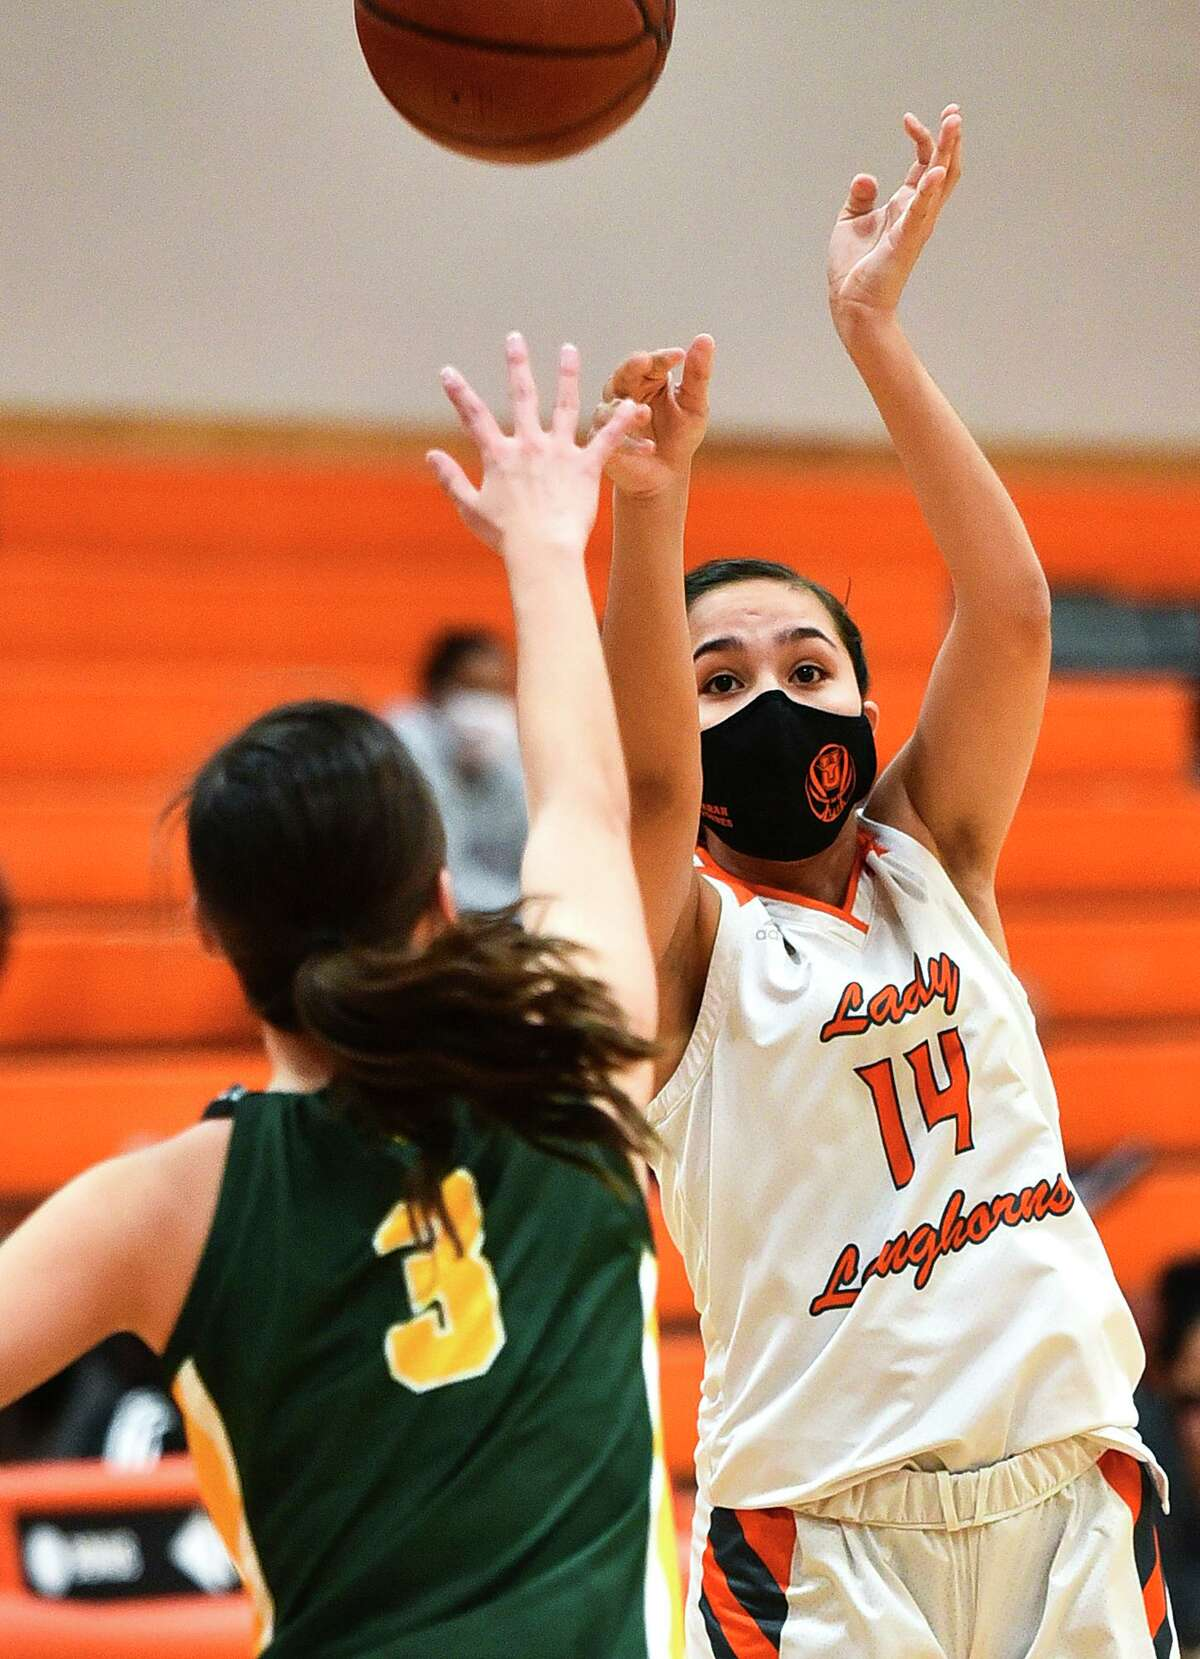 Sarah Torres scored eight of her 14 points in the fourth quarter Friday as United beat Nixon 80-40 at home.